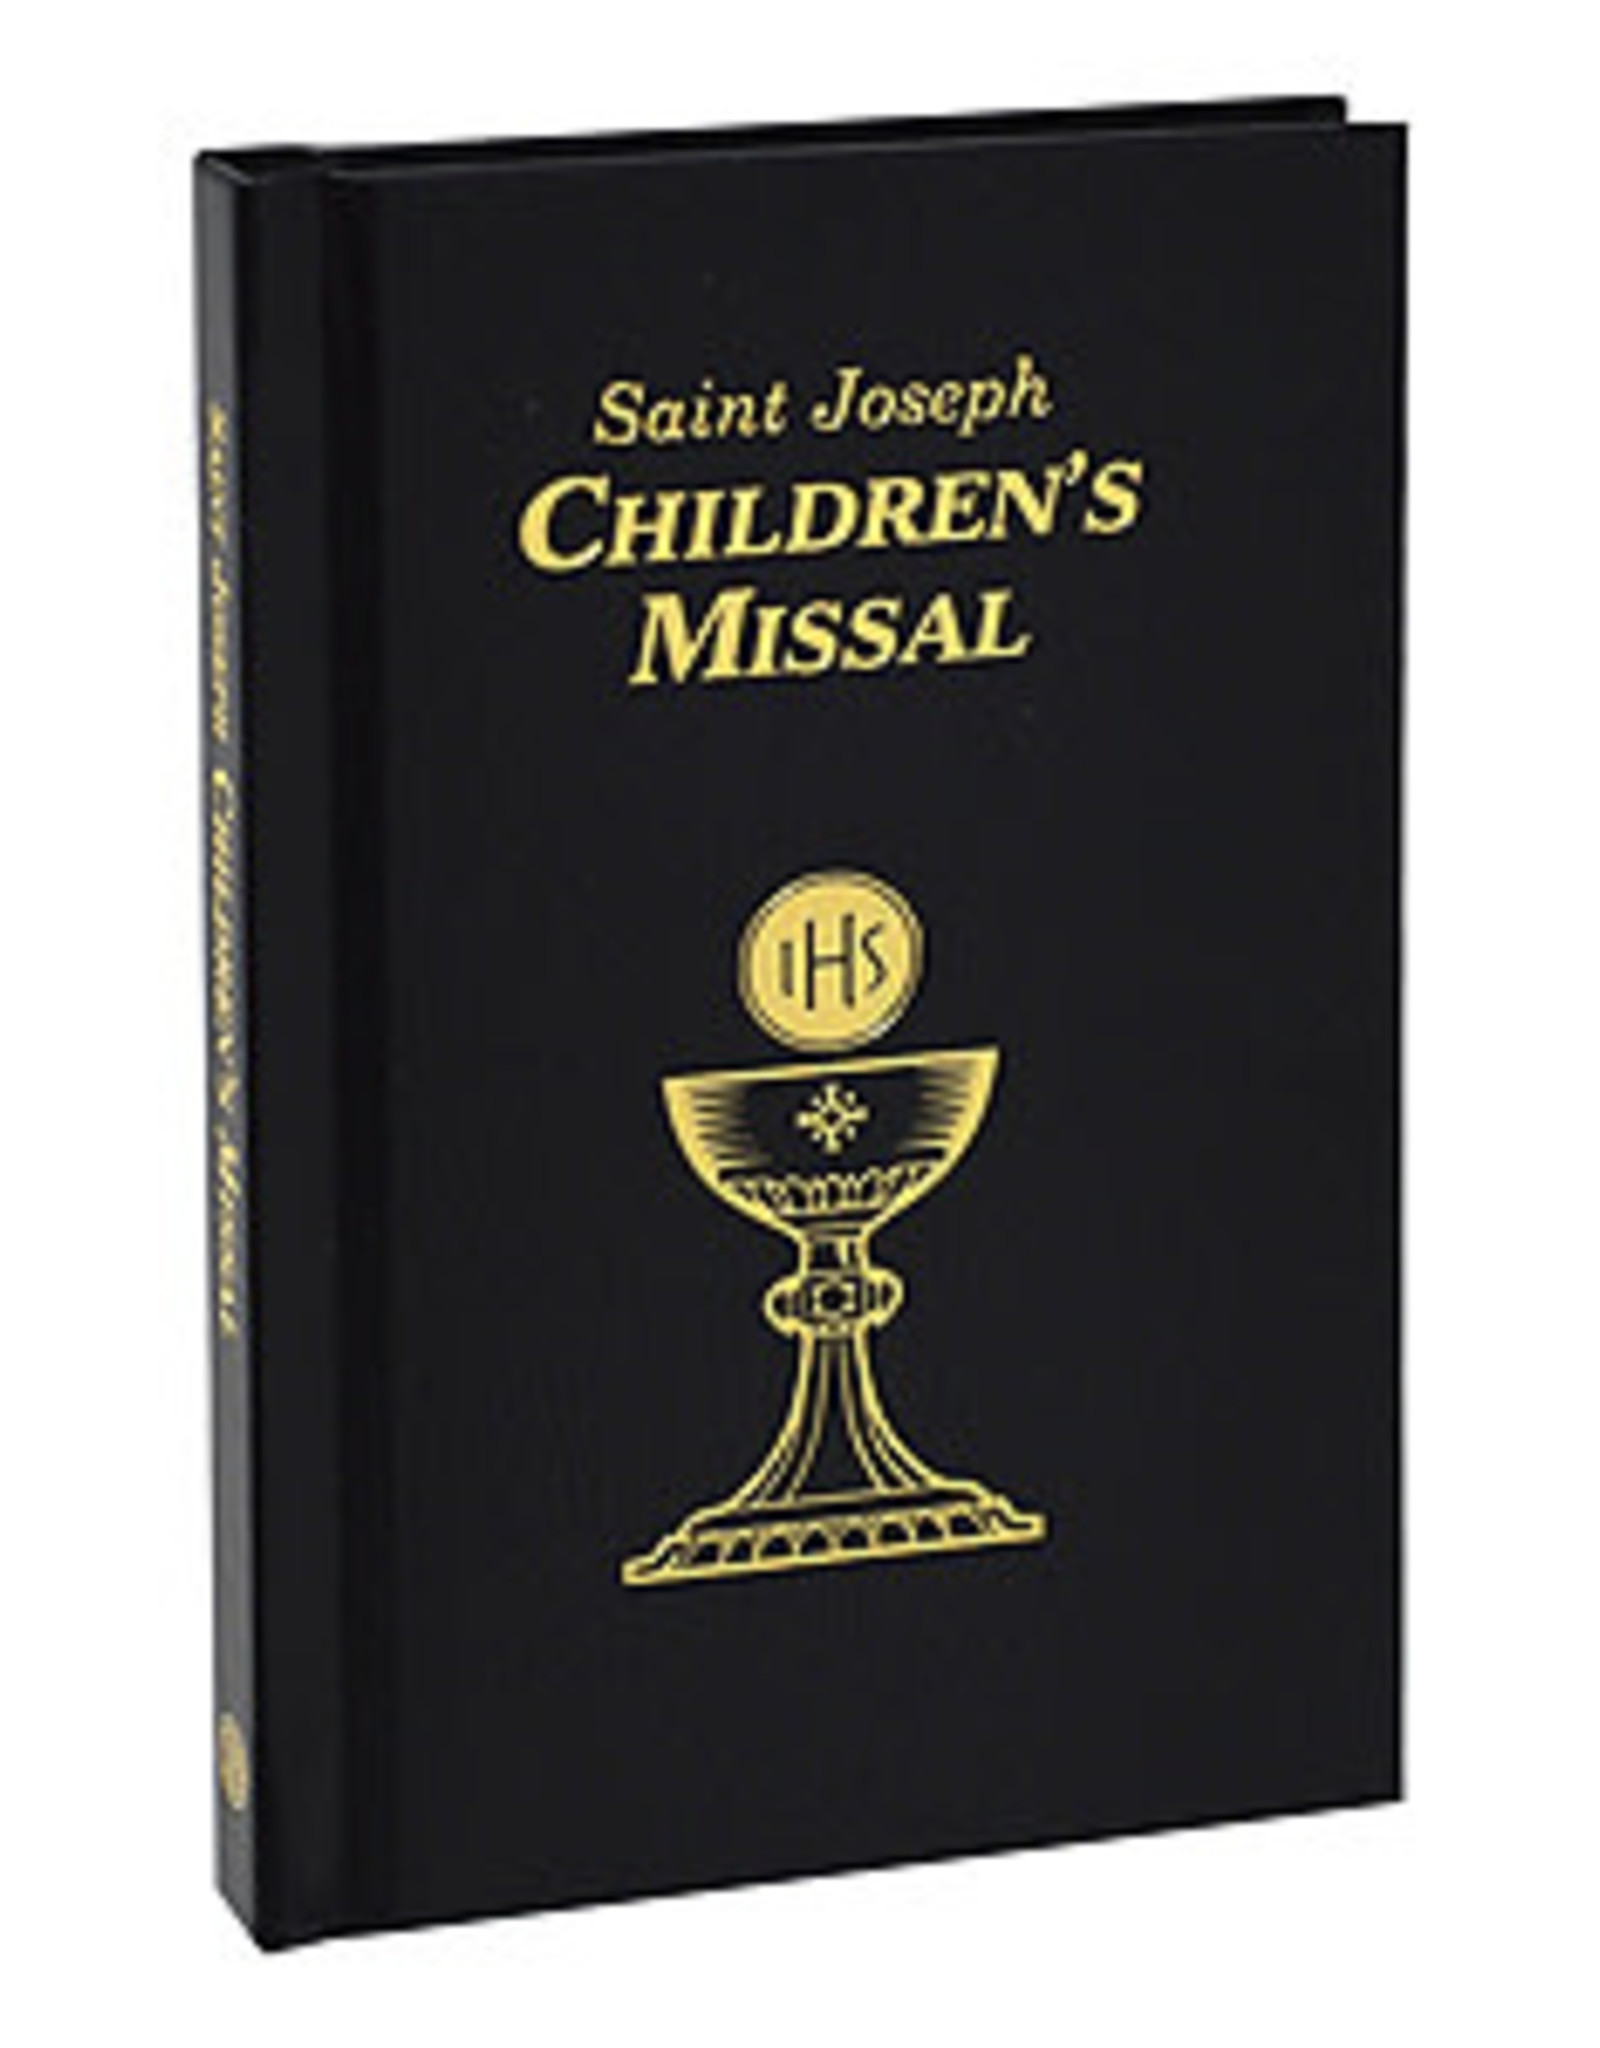 Saint Joseph's Children's Missal (Boys)(hardcover)